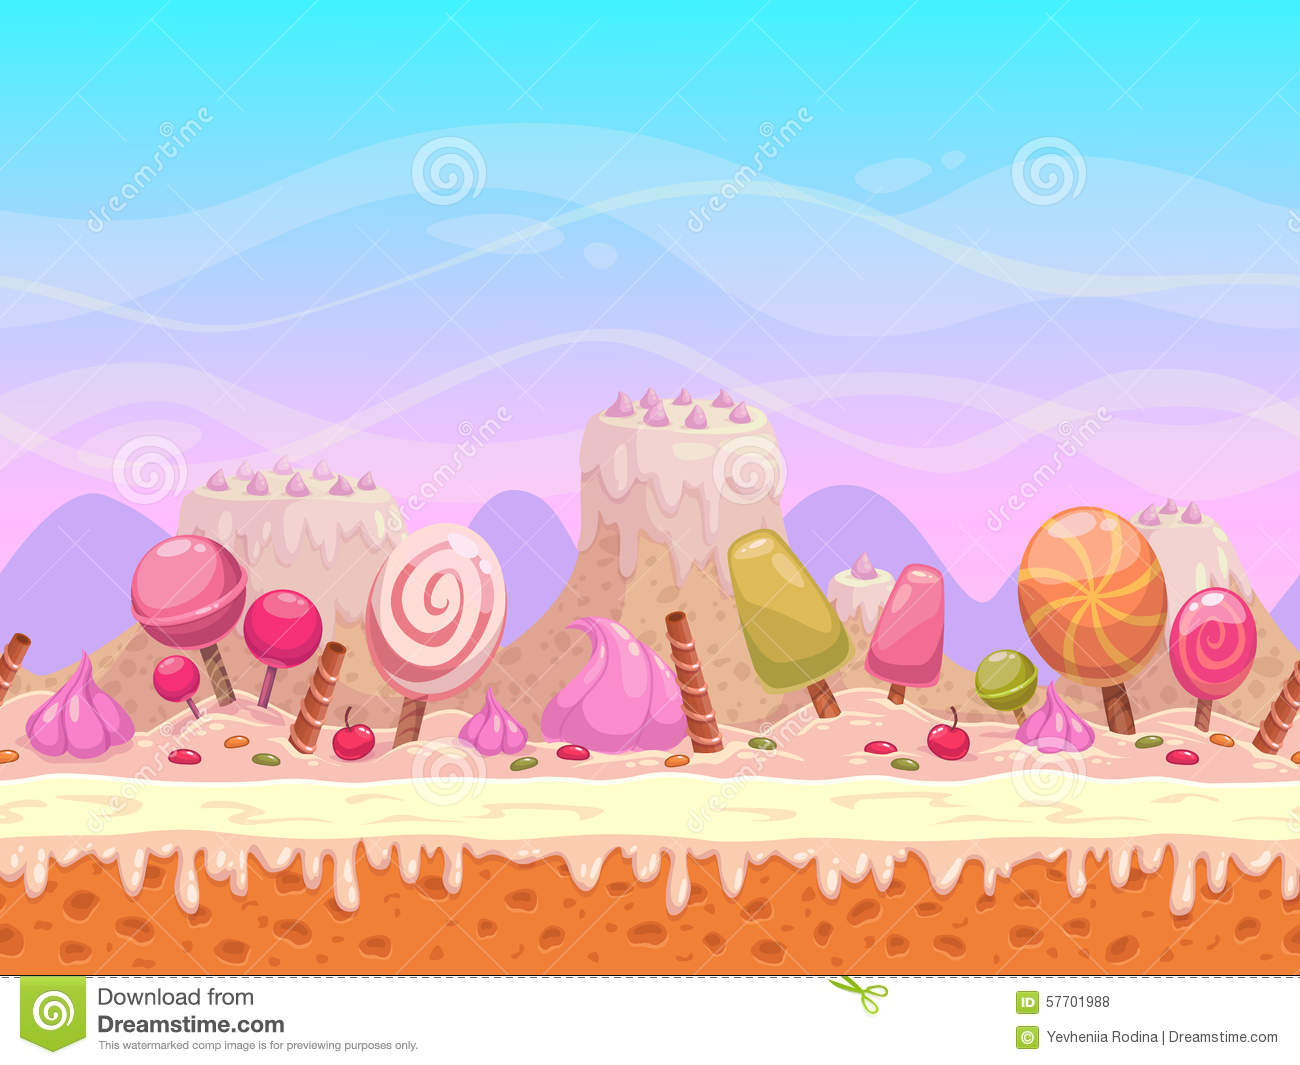 Candyland Background Wallpapersafari HD Wallpapers Download Free Images Wallpaper [1000image.com]